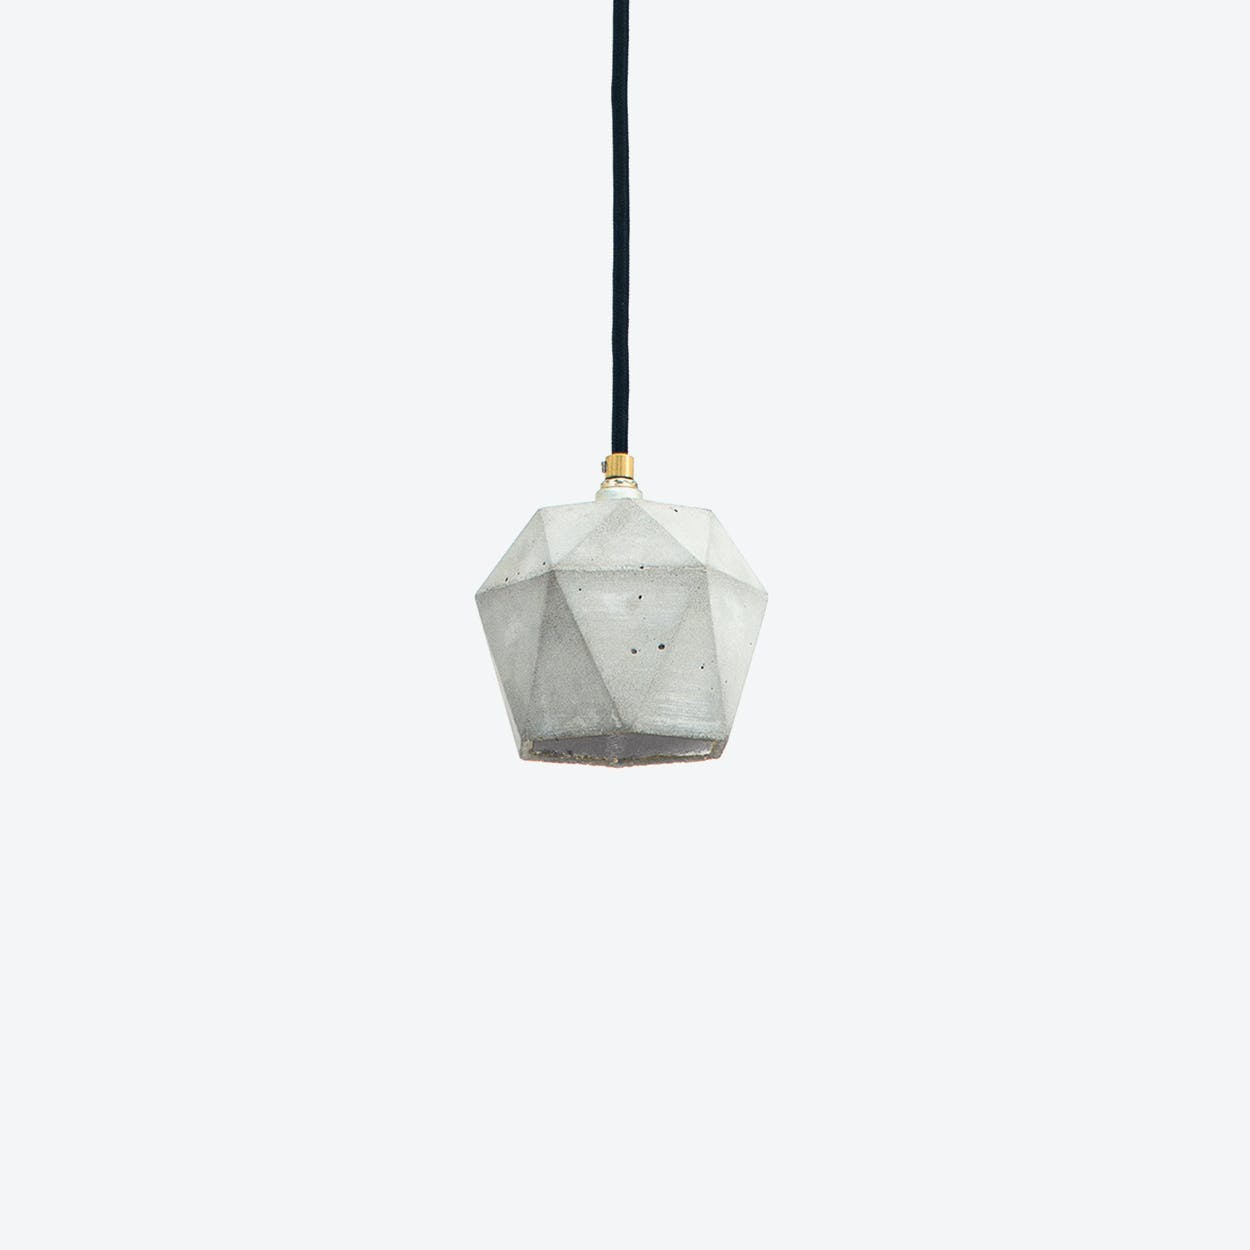 Concrete Pendant Light Triangle Small T2 in Light Grey and Silver